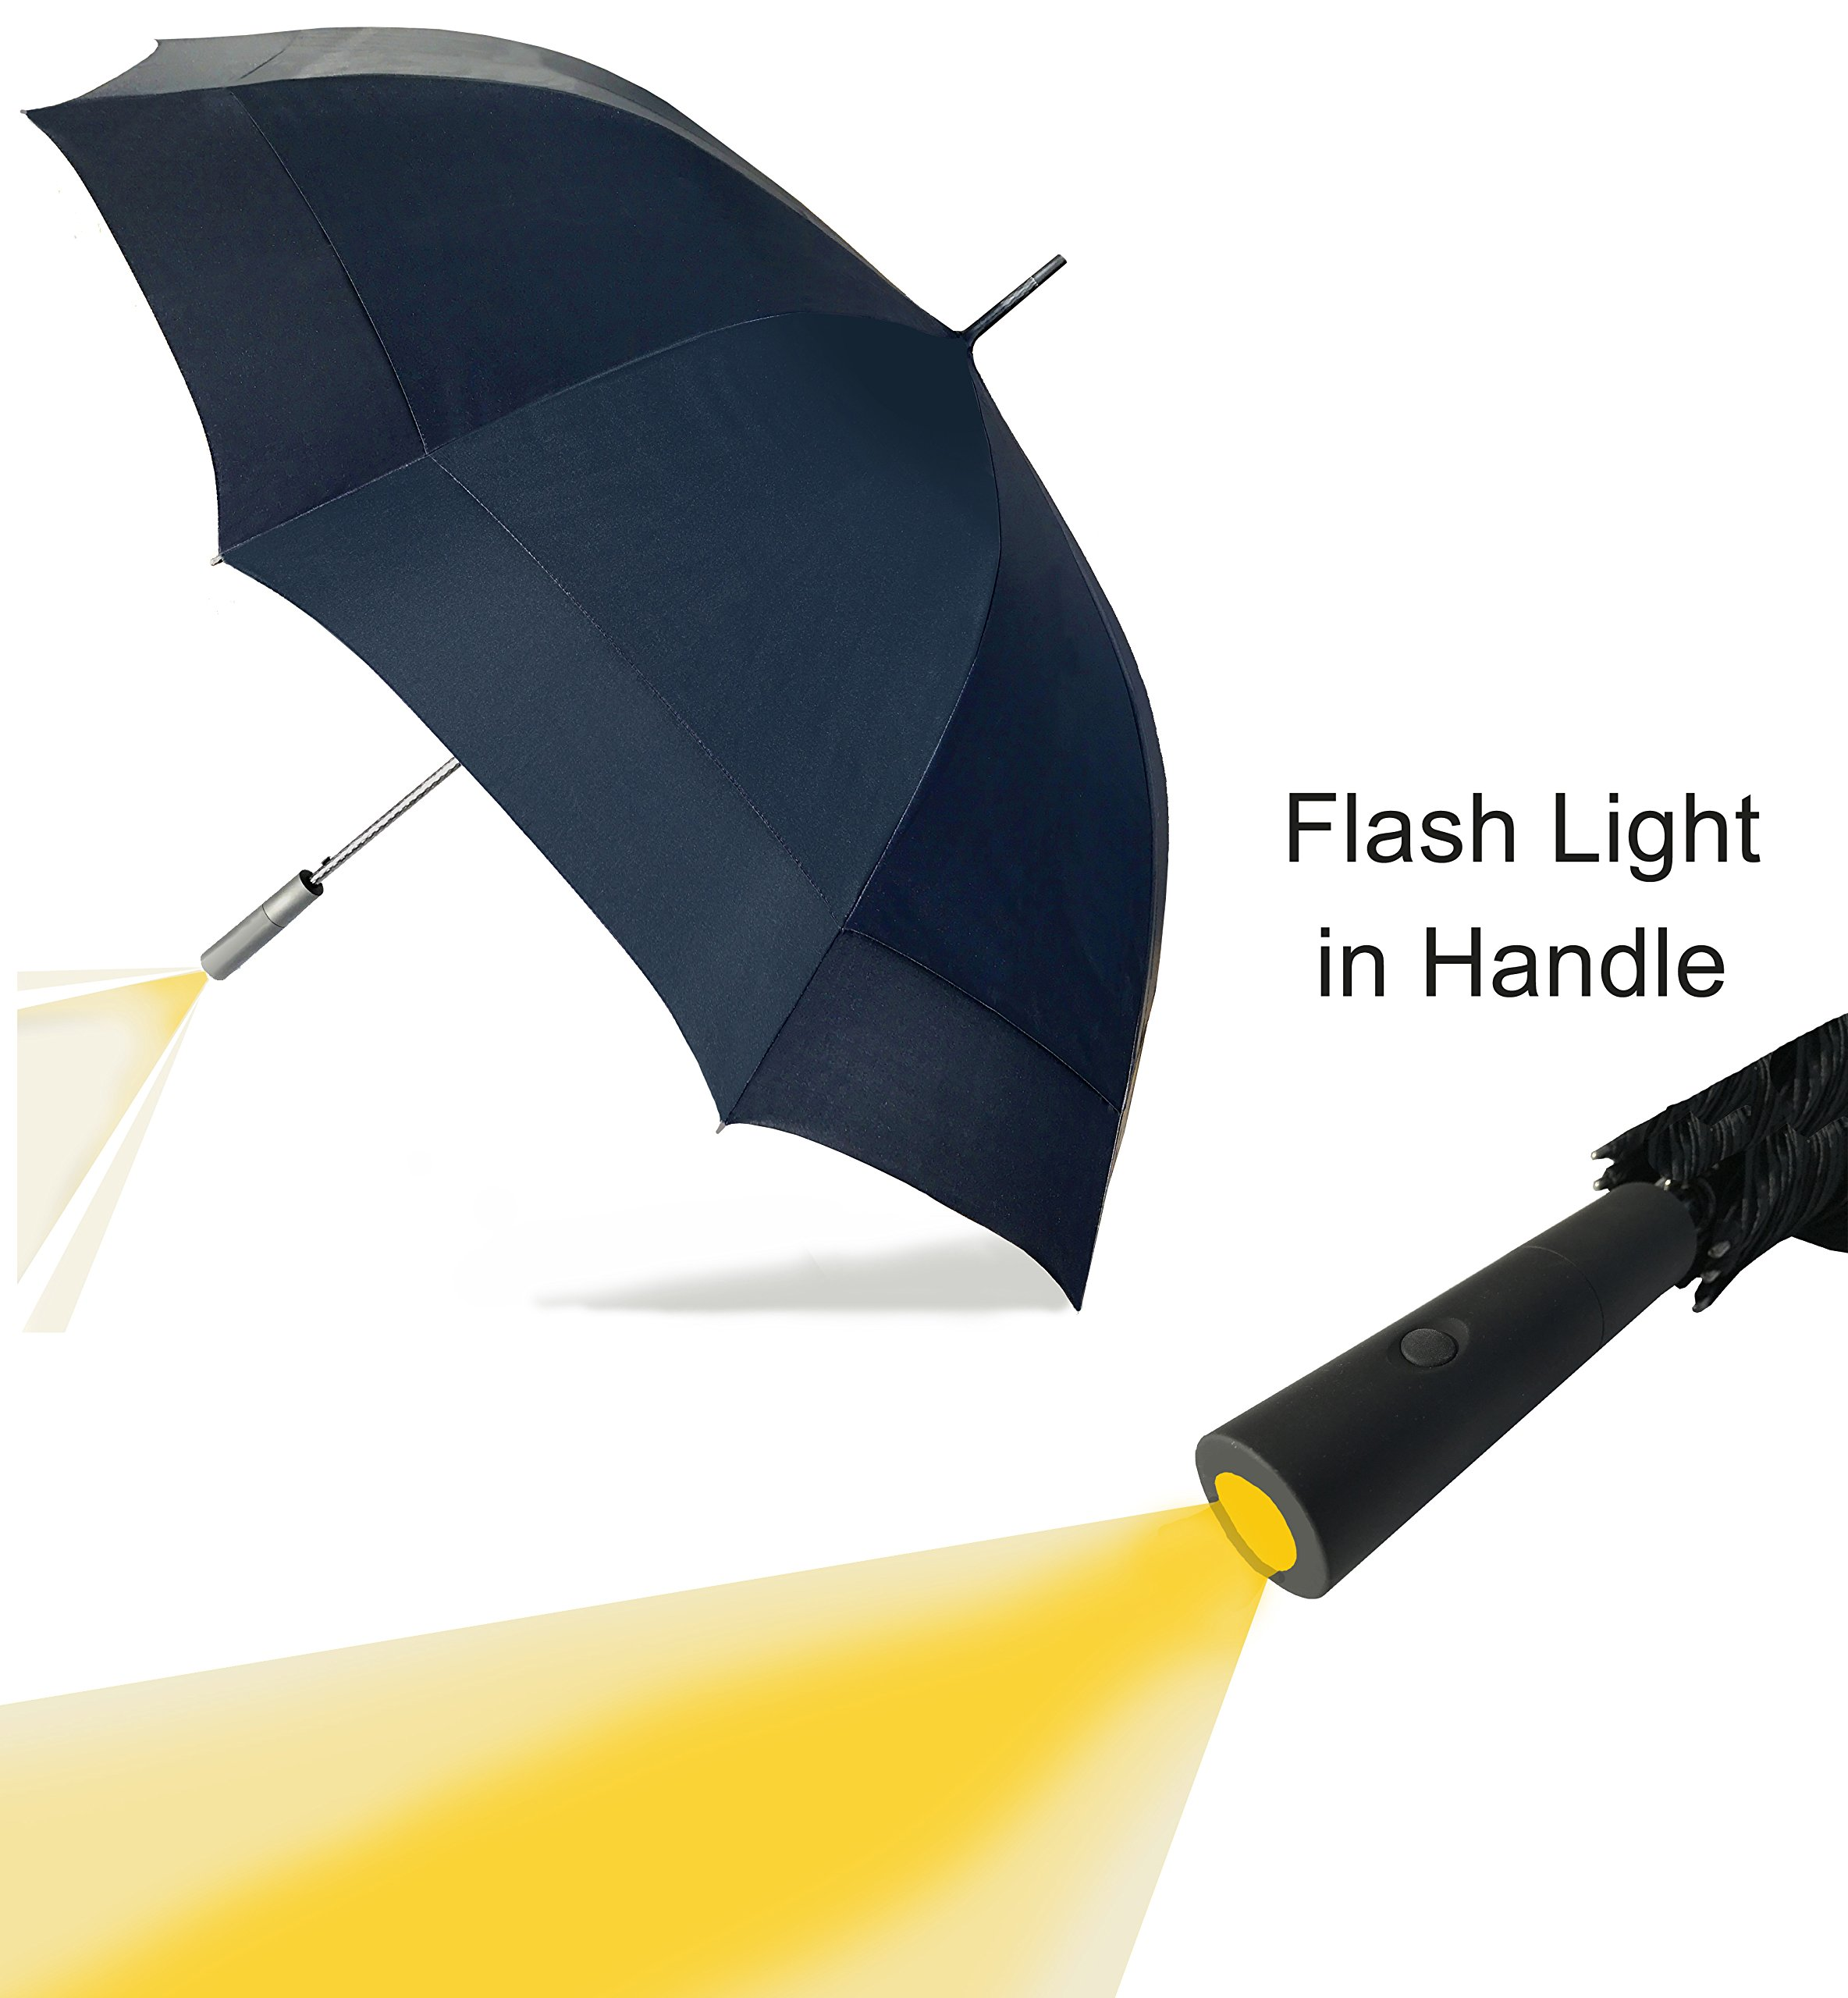 Large Umbrella with LED Flash Light in the Easy Grip Handle. Super Strong & Waterproof, 10 Metal Ribs & Fibreglass Shaft, Largest Double Wind Vents in the Market. Highest Quality 210T UV Fabric